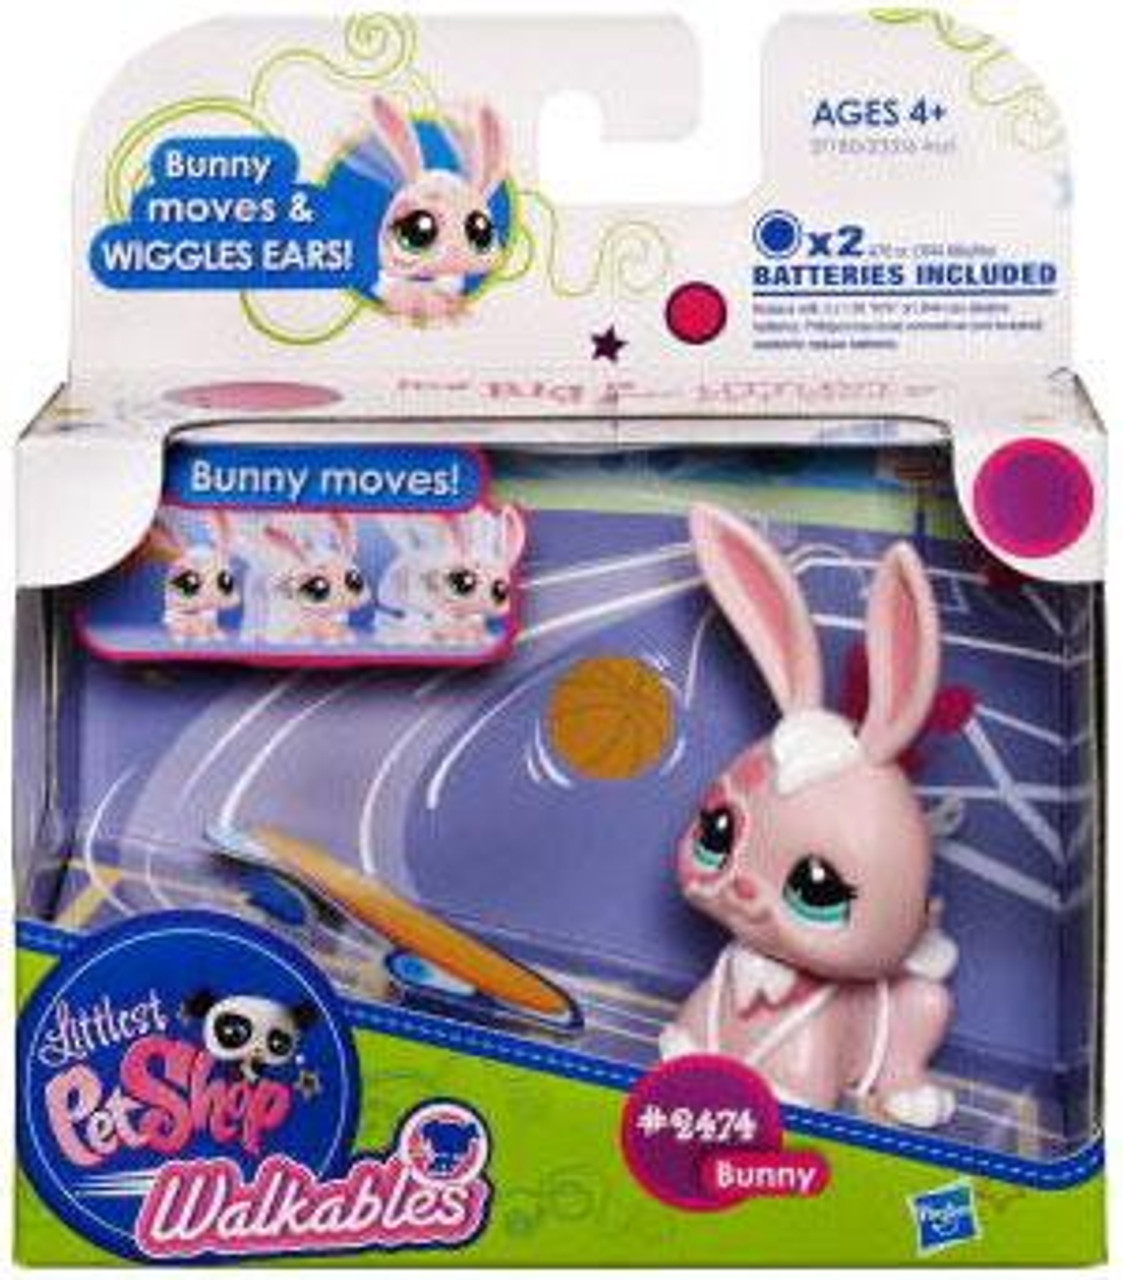 Littlest Pet Shop Walkables Bunny Figure #2474